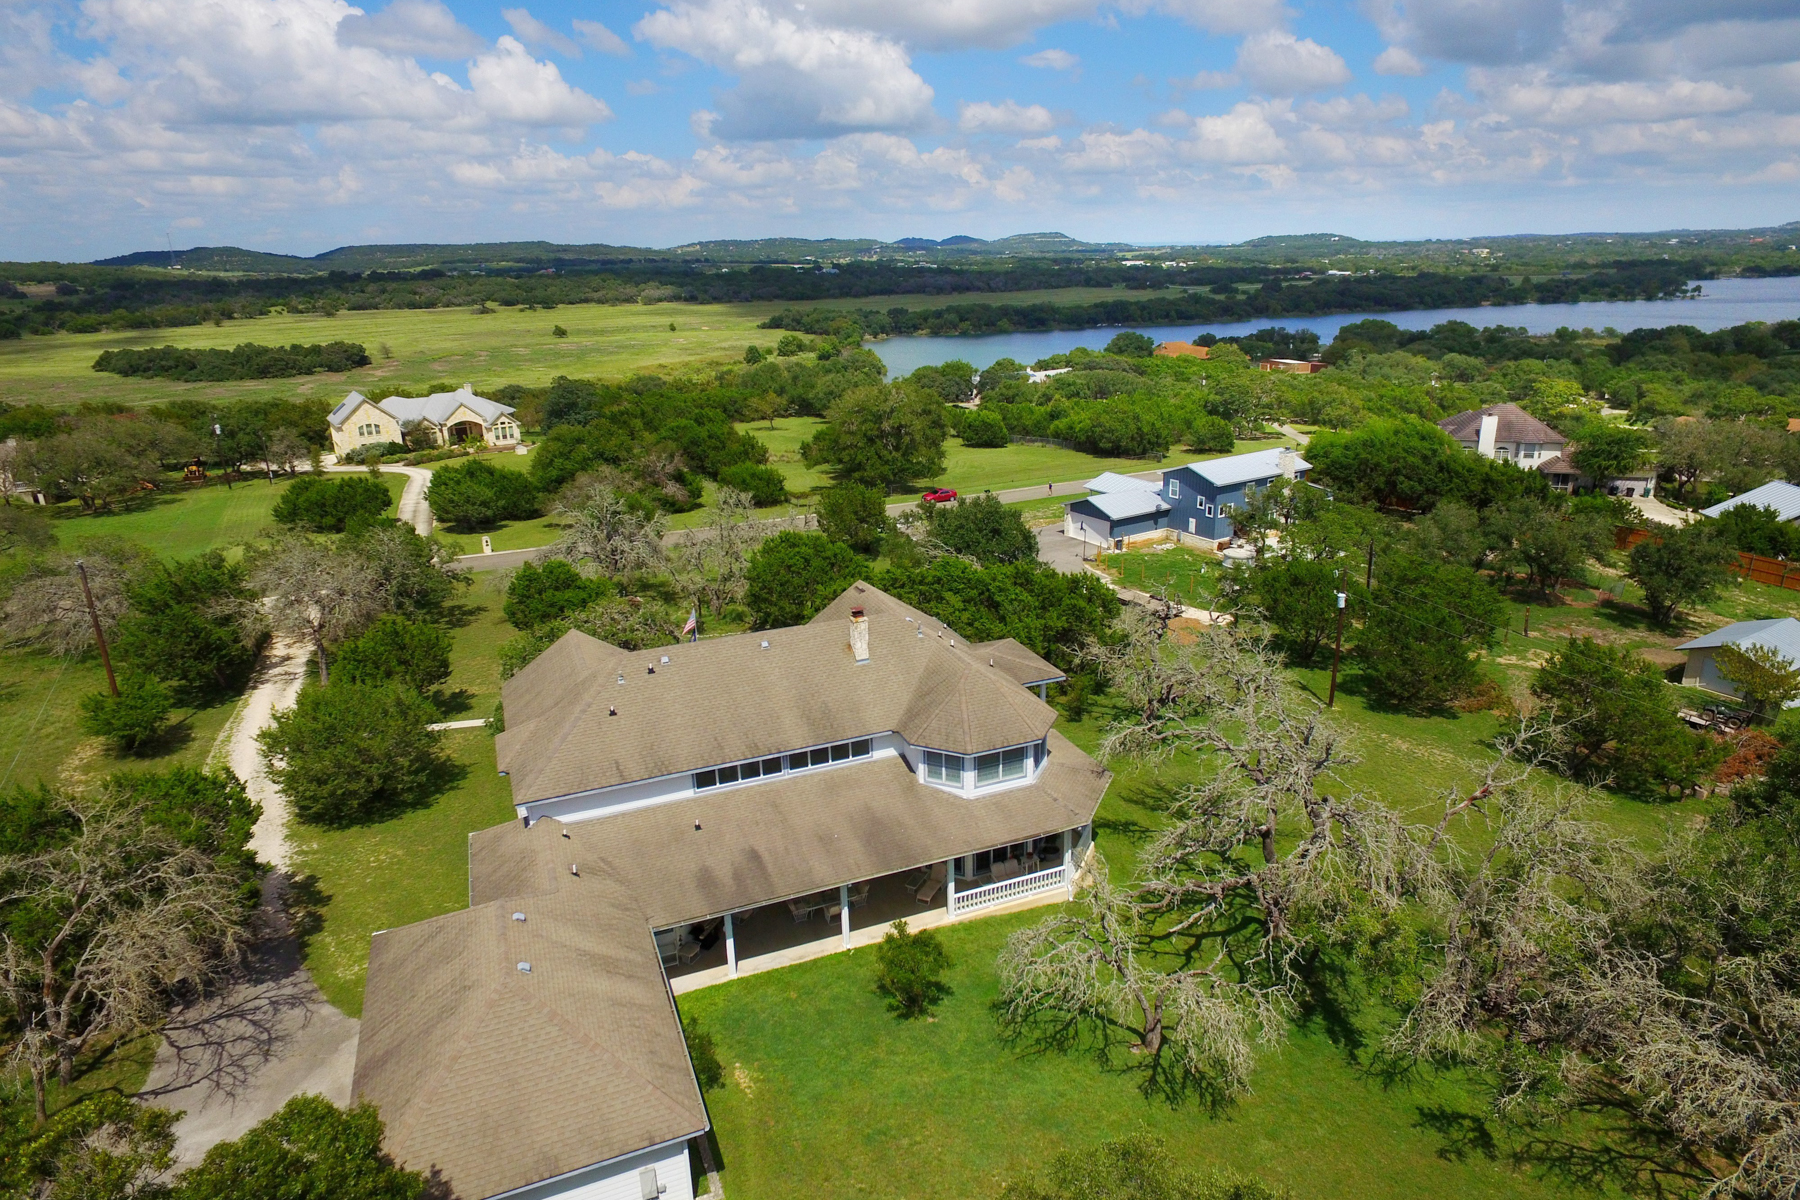 Additional photo for property listing at Fabulous Home in Lake Country 313 Lake View Dr Boerne, Texas 78006 Estados Unidos